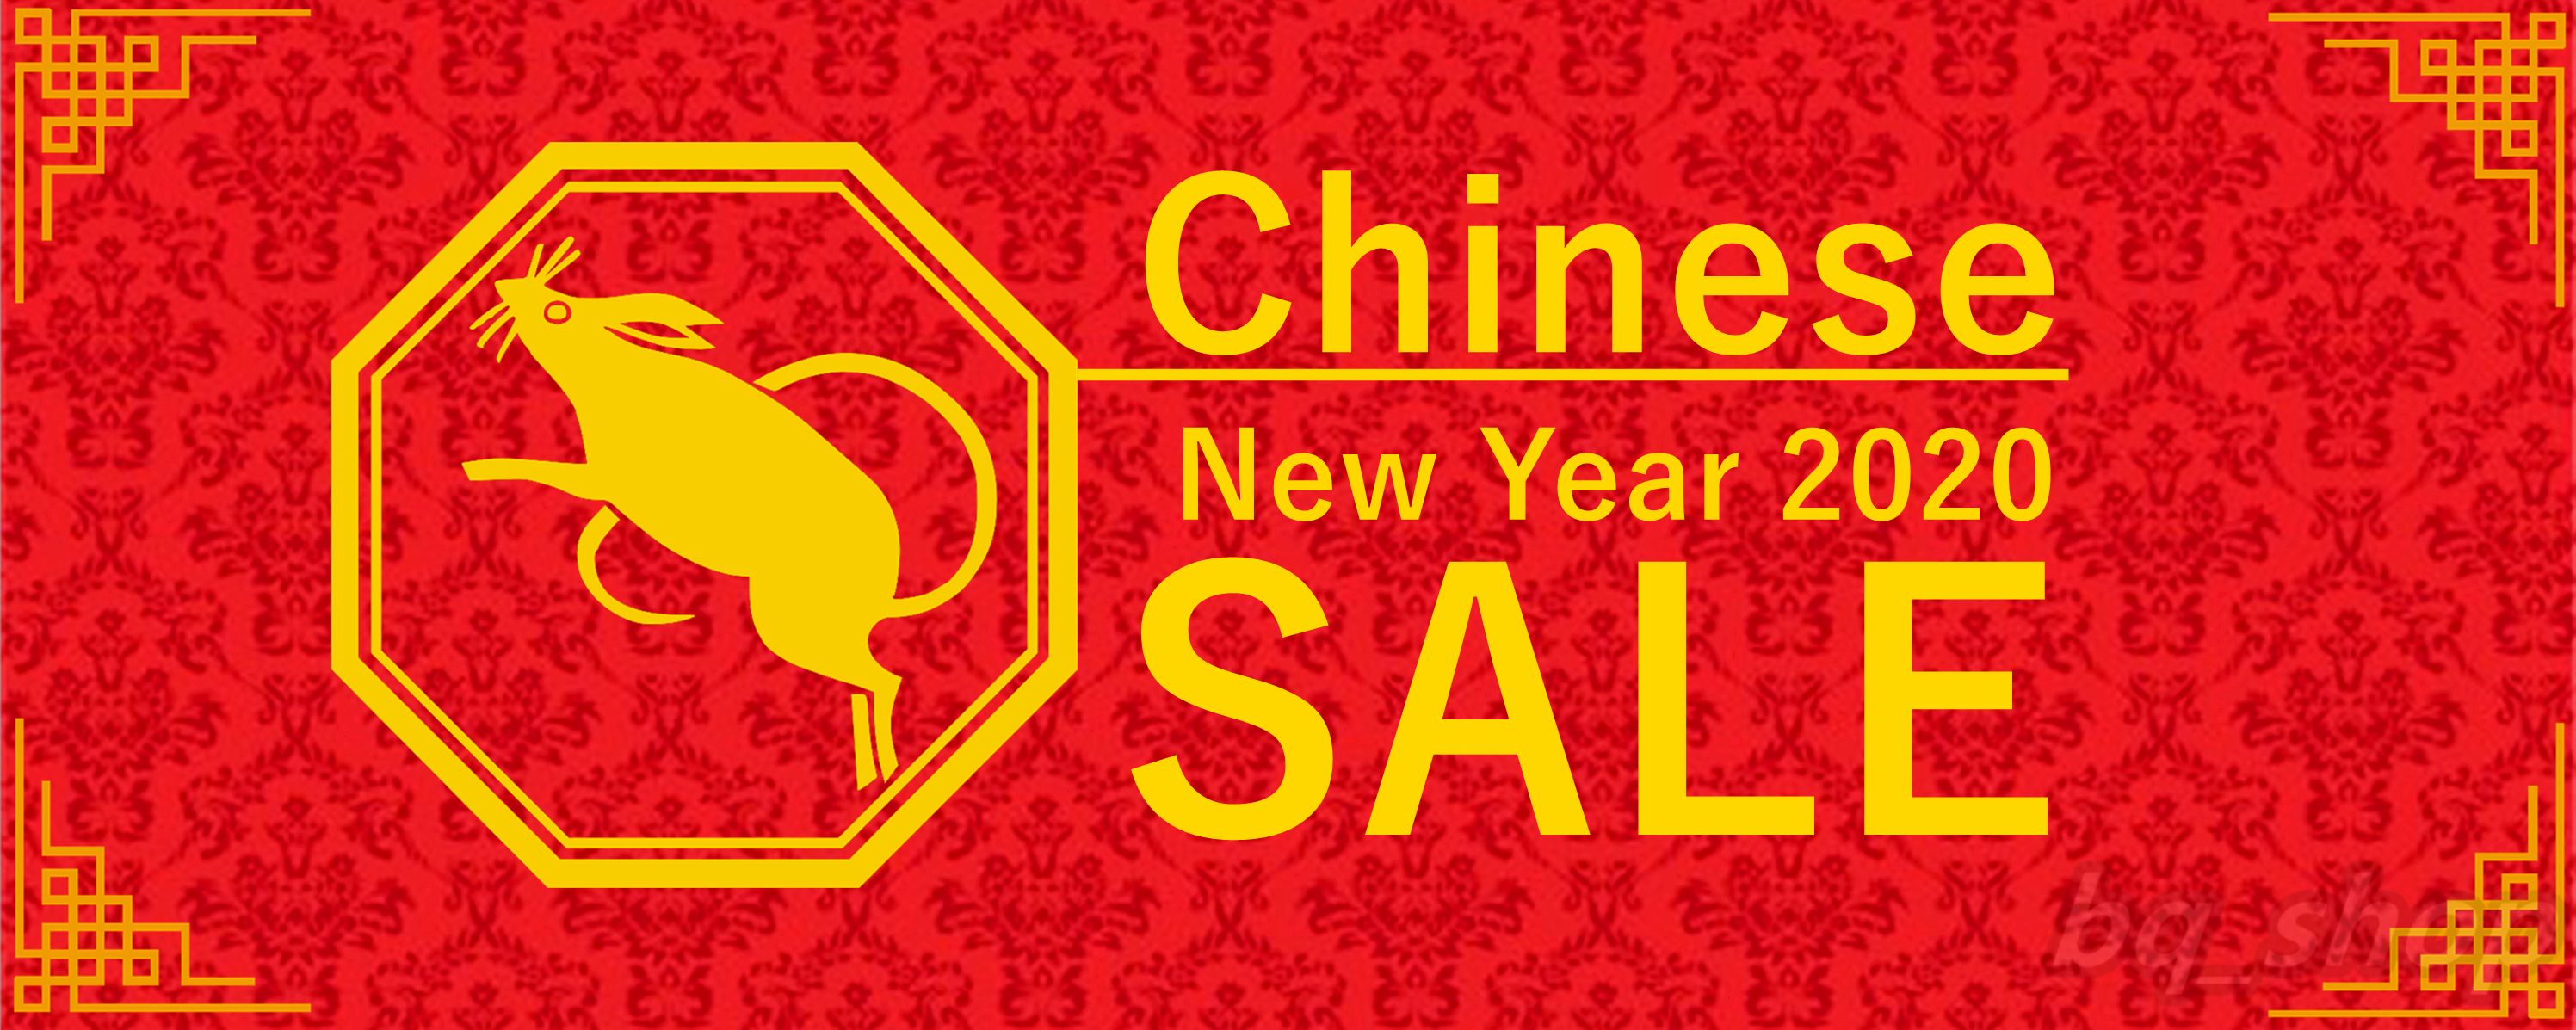 chinese-new-year-2020-sale-1.png